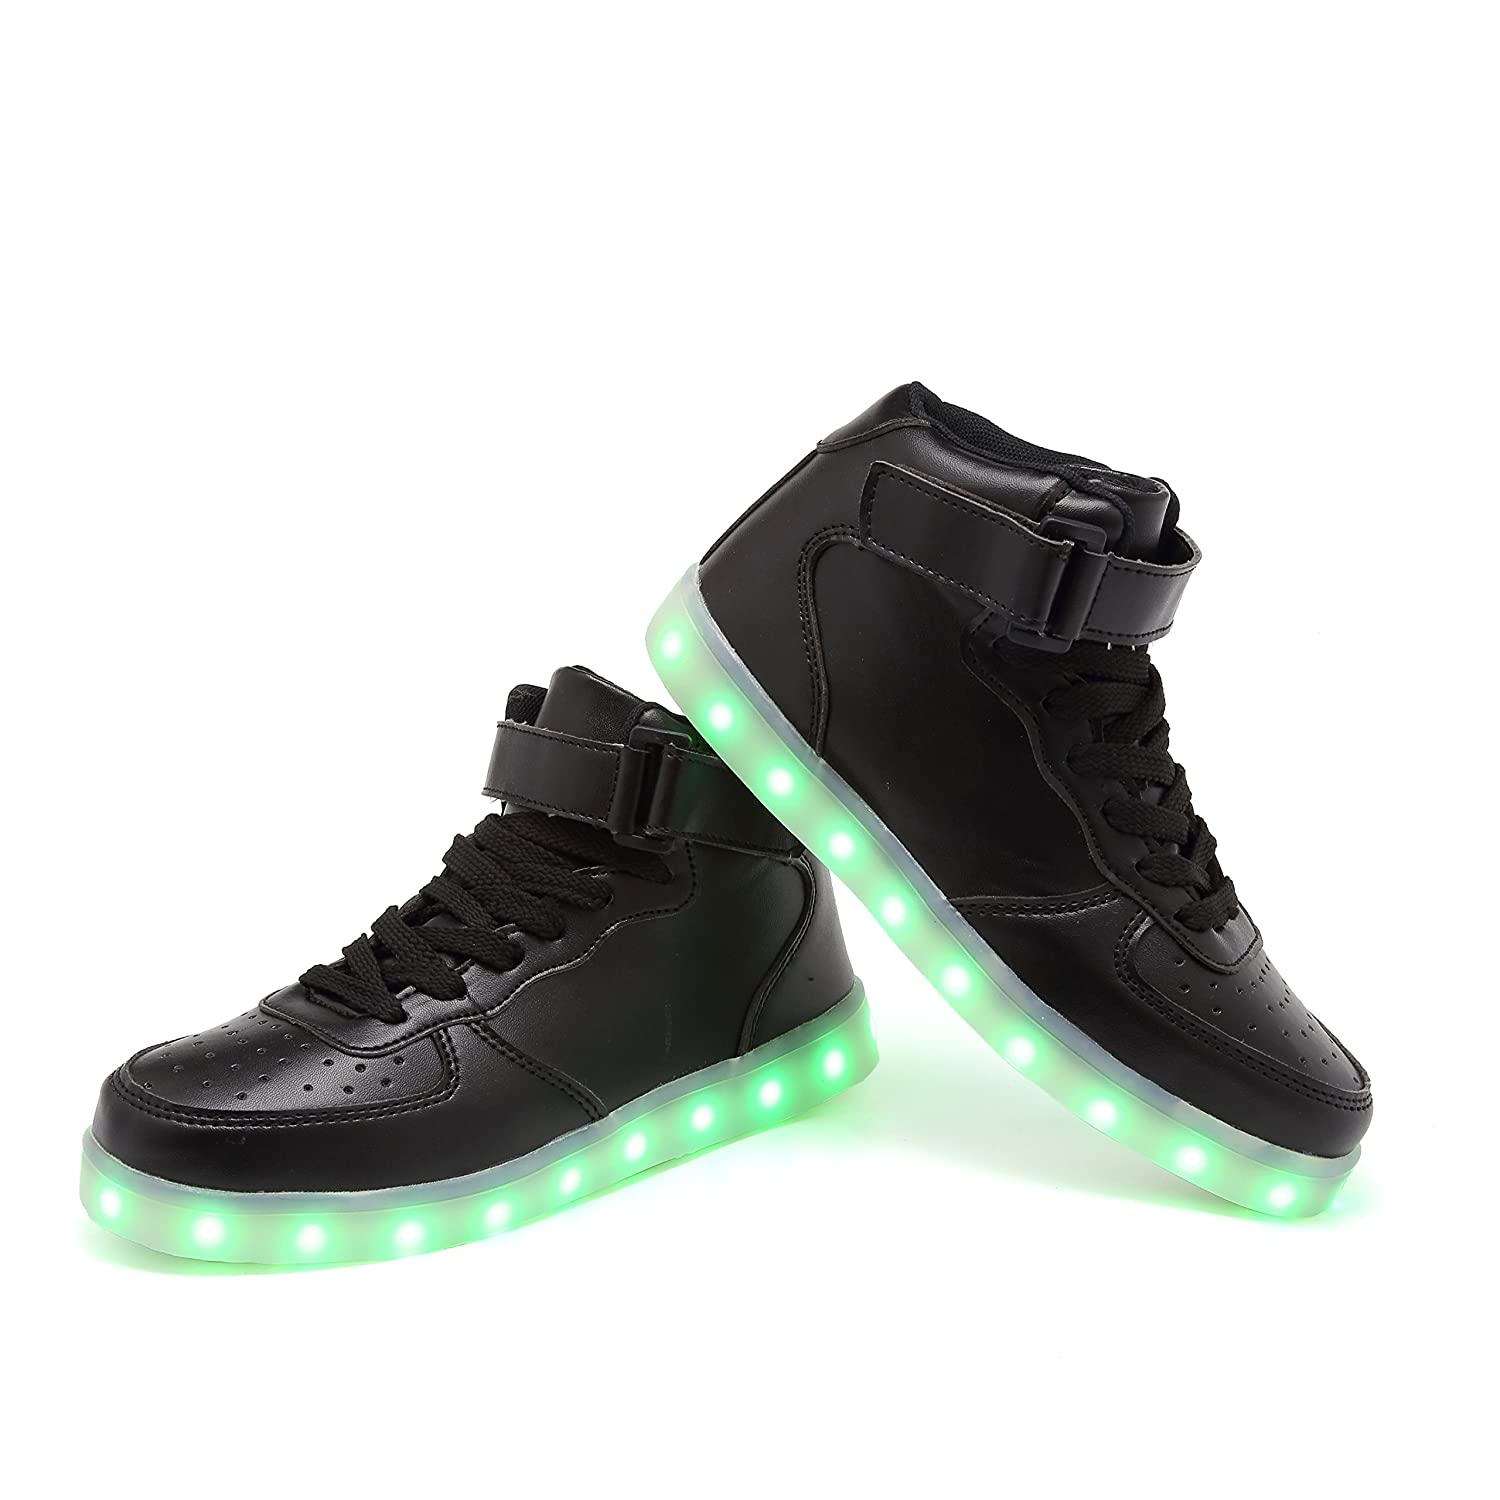 2 M US Big Kids, Black KEESKY High Top Led Light Up Sneakers for Toddler Kids Boys Girls Ankle Boots Flashing Walking Shoes